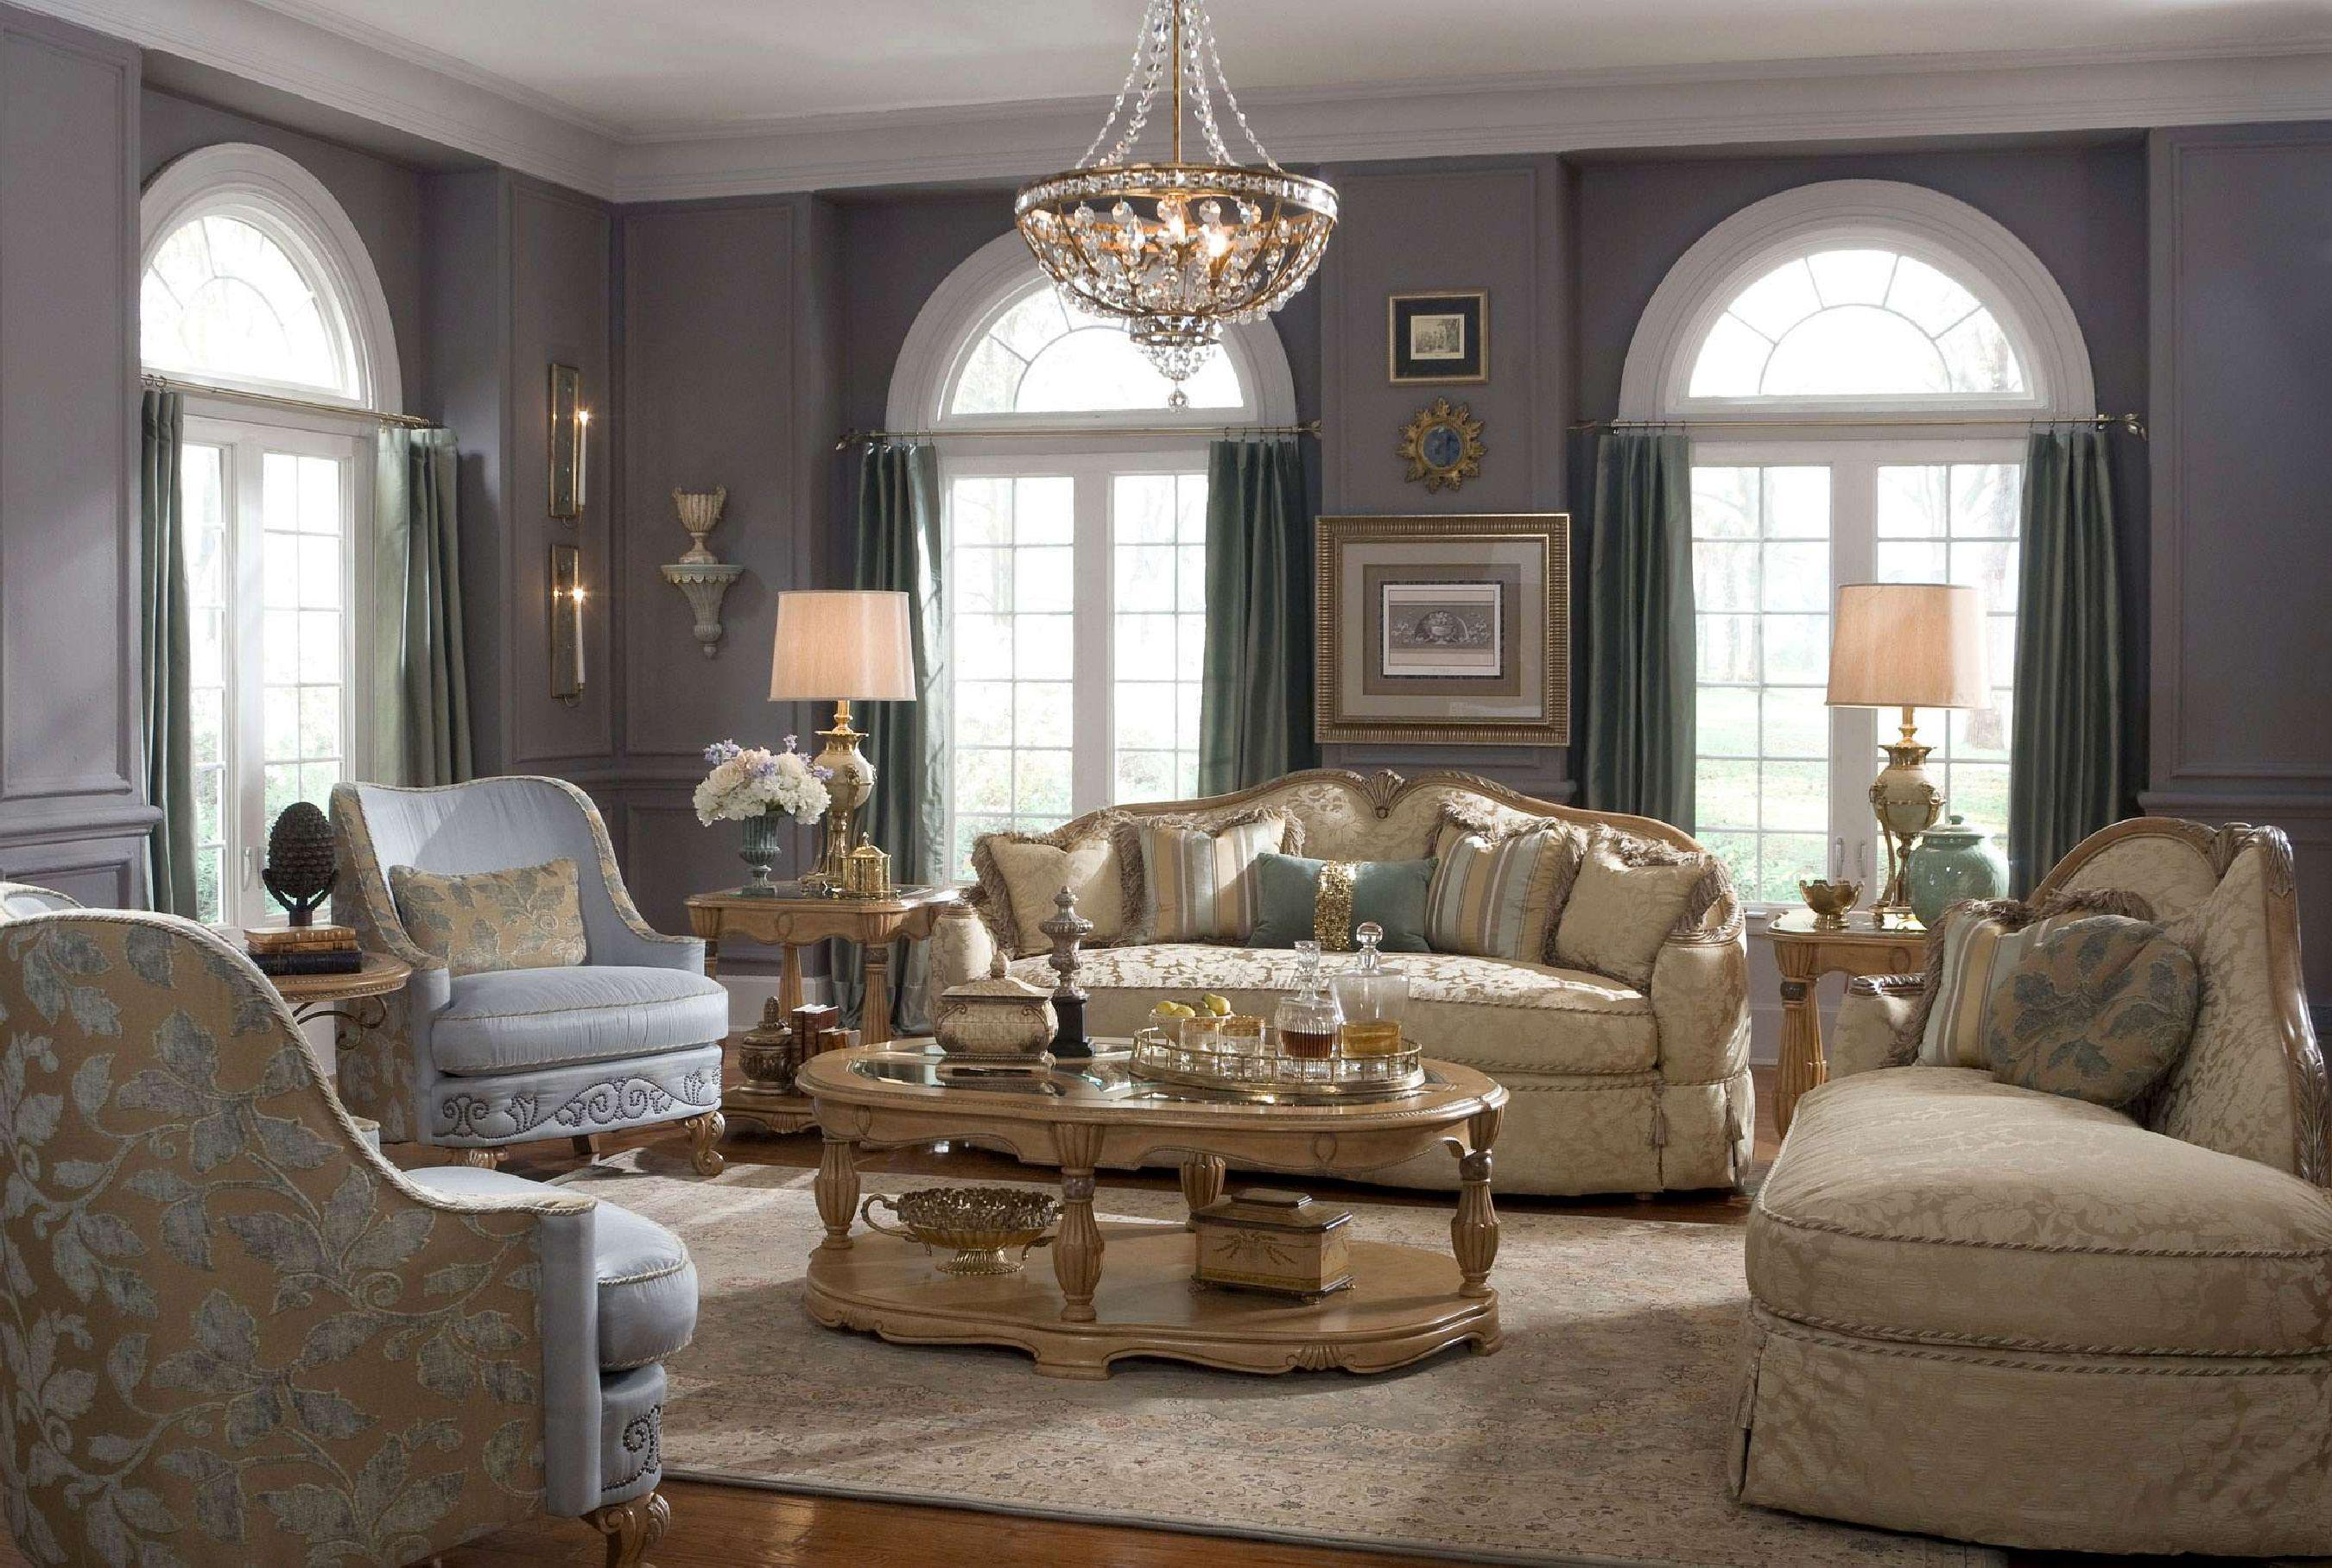 3 Benefits Of Decorating Your Home With Antiques - 3 Benefits Of